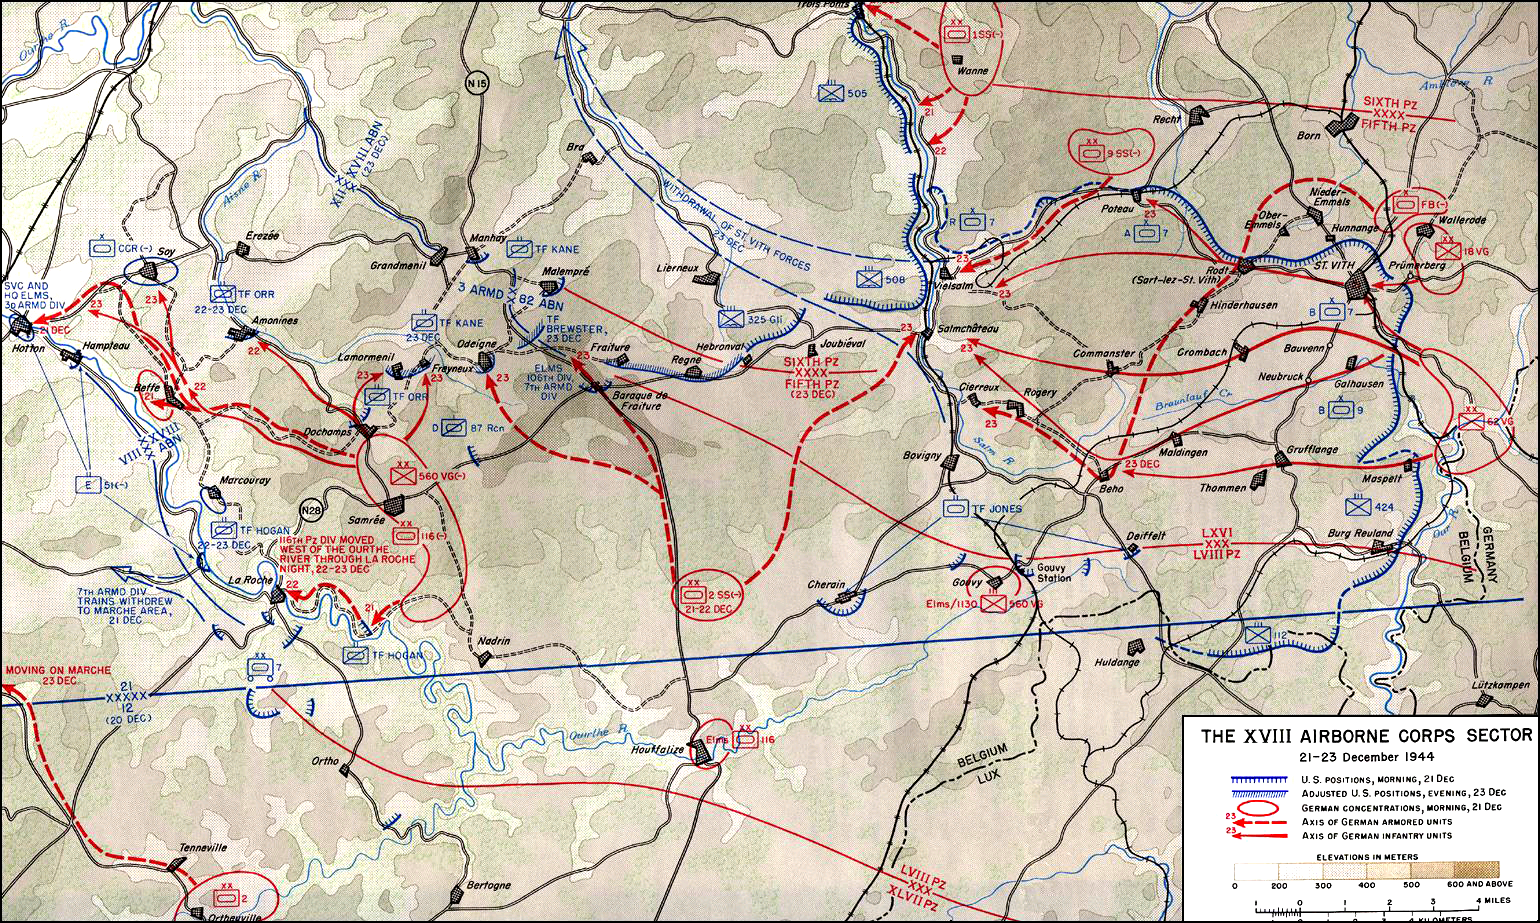 http://upload.wikimedia.org/wikipedia/commons/d/d6/18_ABC_SECTOR_MAP_DECEMBER_21-23_1944.png